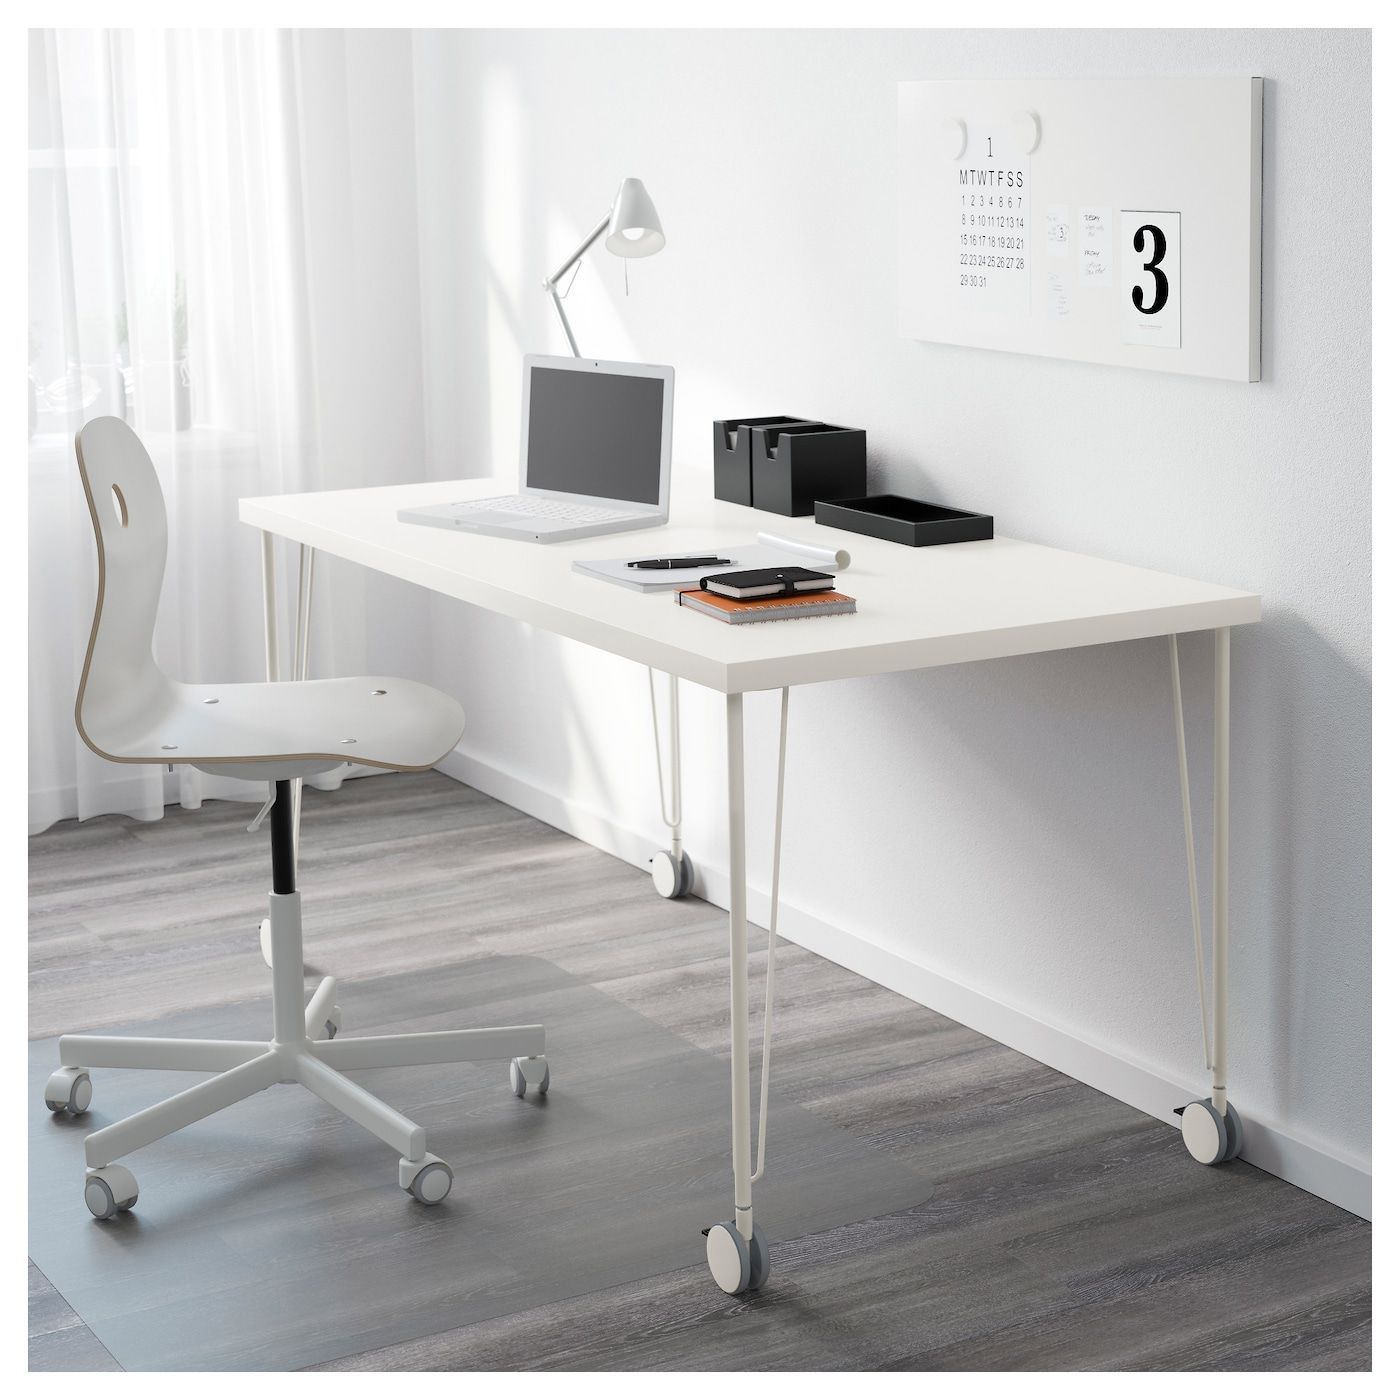 Linnmon Tabletop White 59x29 1 2 Ikea Drawer Unit Affordable Furniture Linnmon Table Top